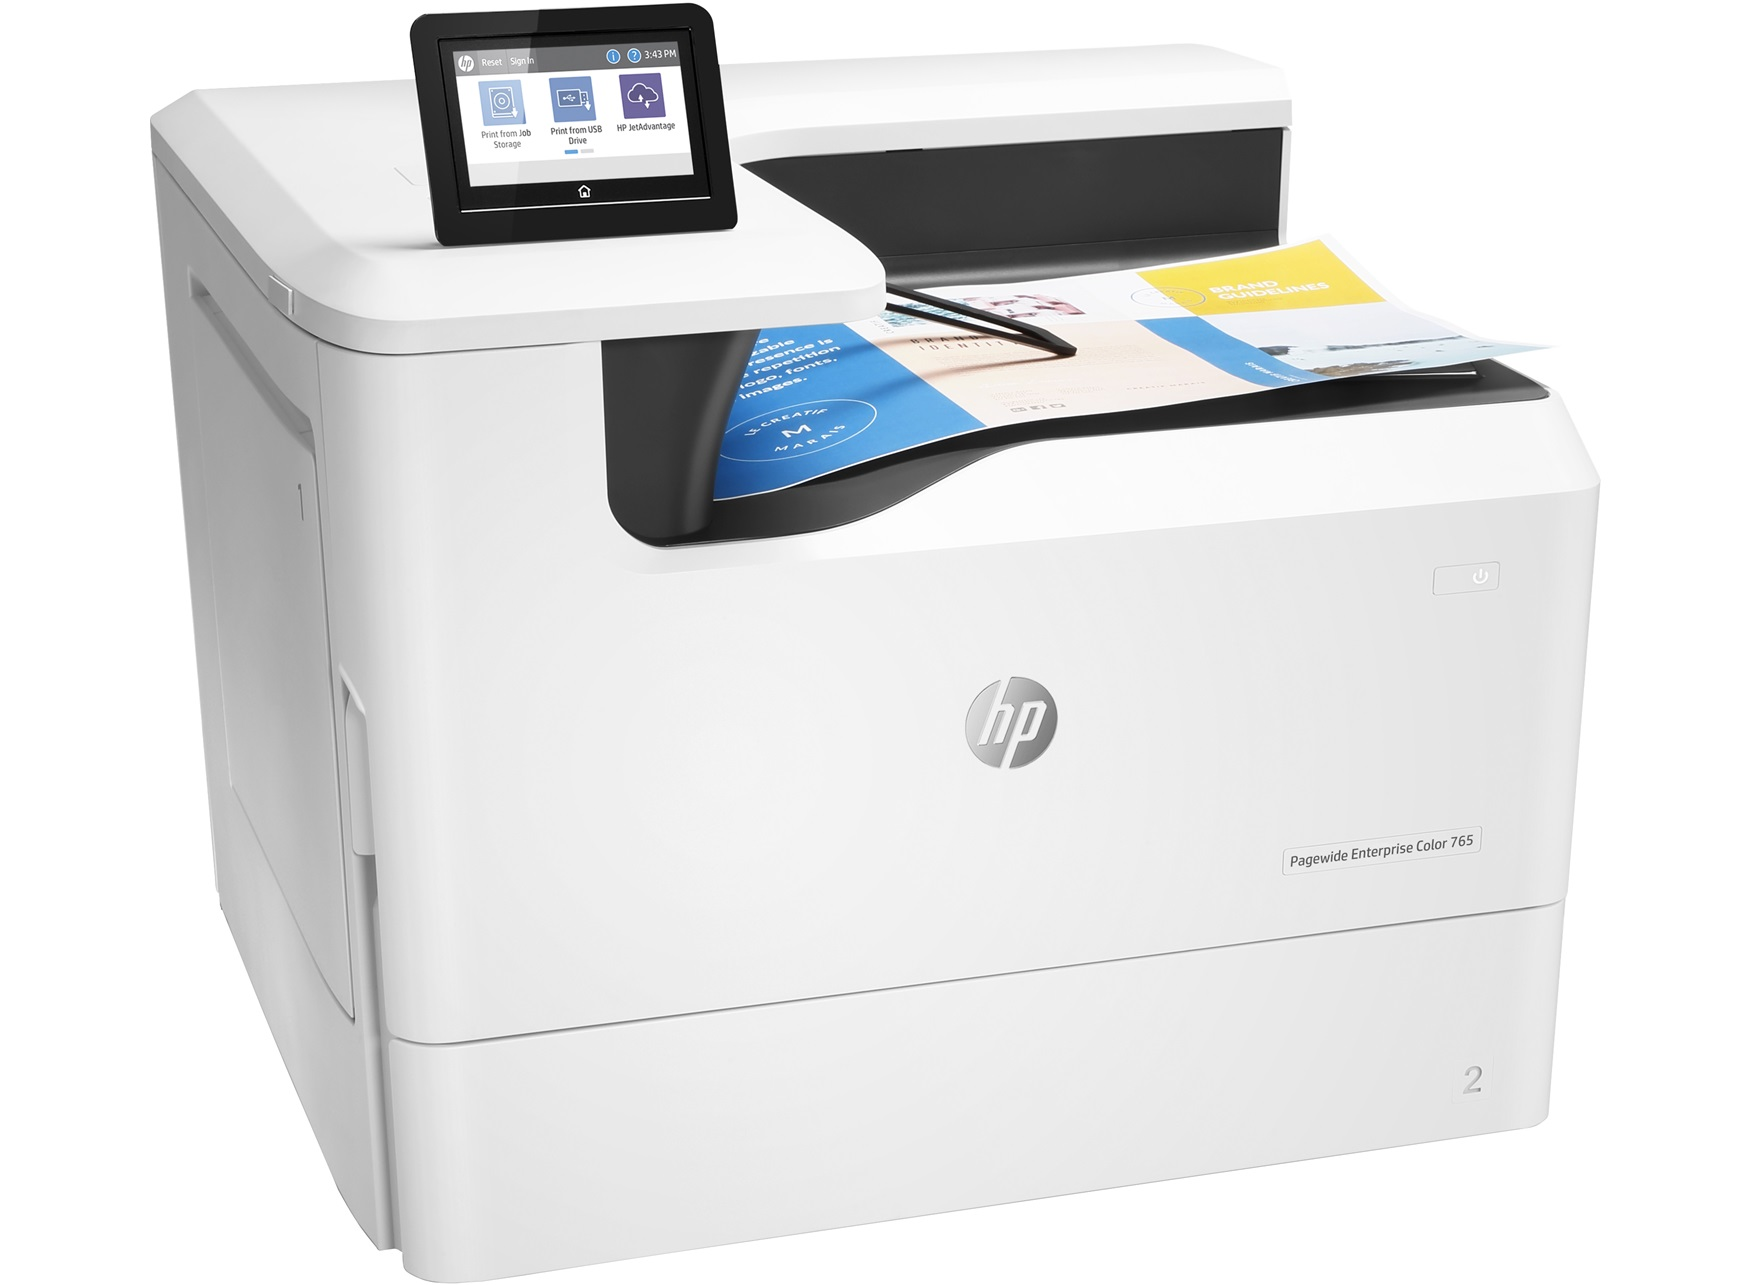 HP PageWide Enterprise Color 765dn Color Laser Printer, Refurbished (J7Z04A)